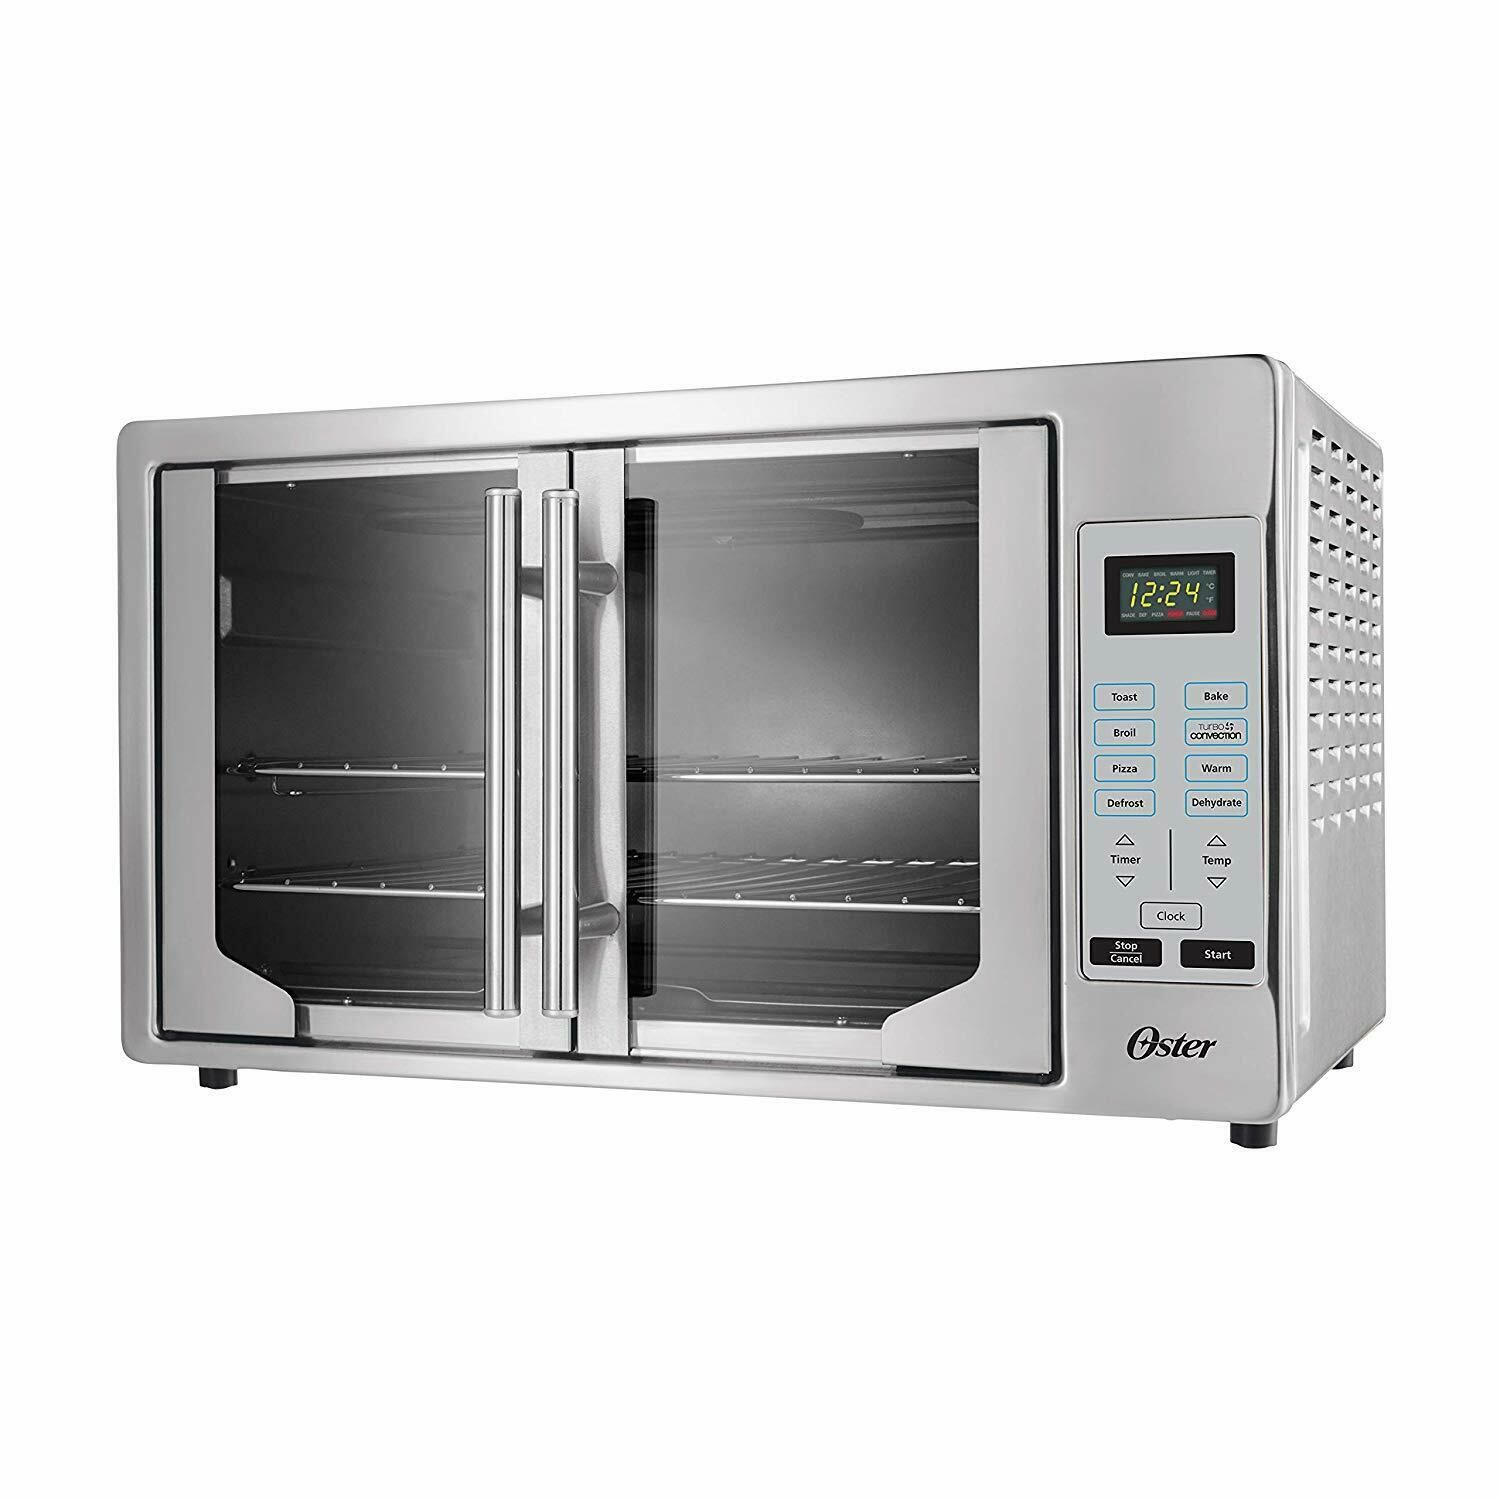 Details About Oster French Convection Countertop Toaster Oven